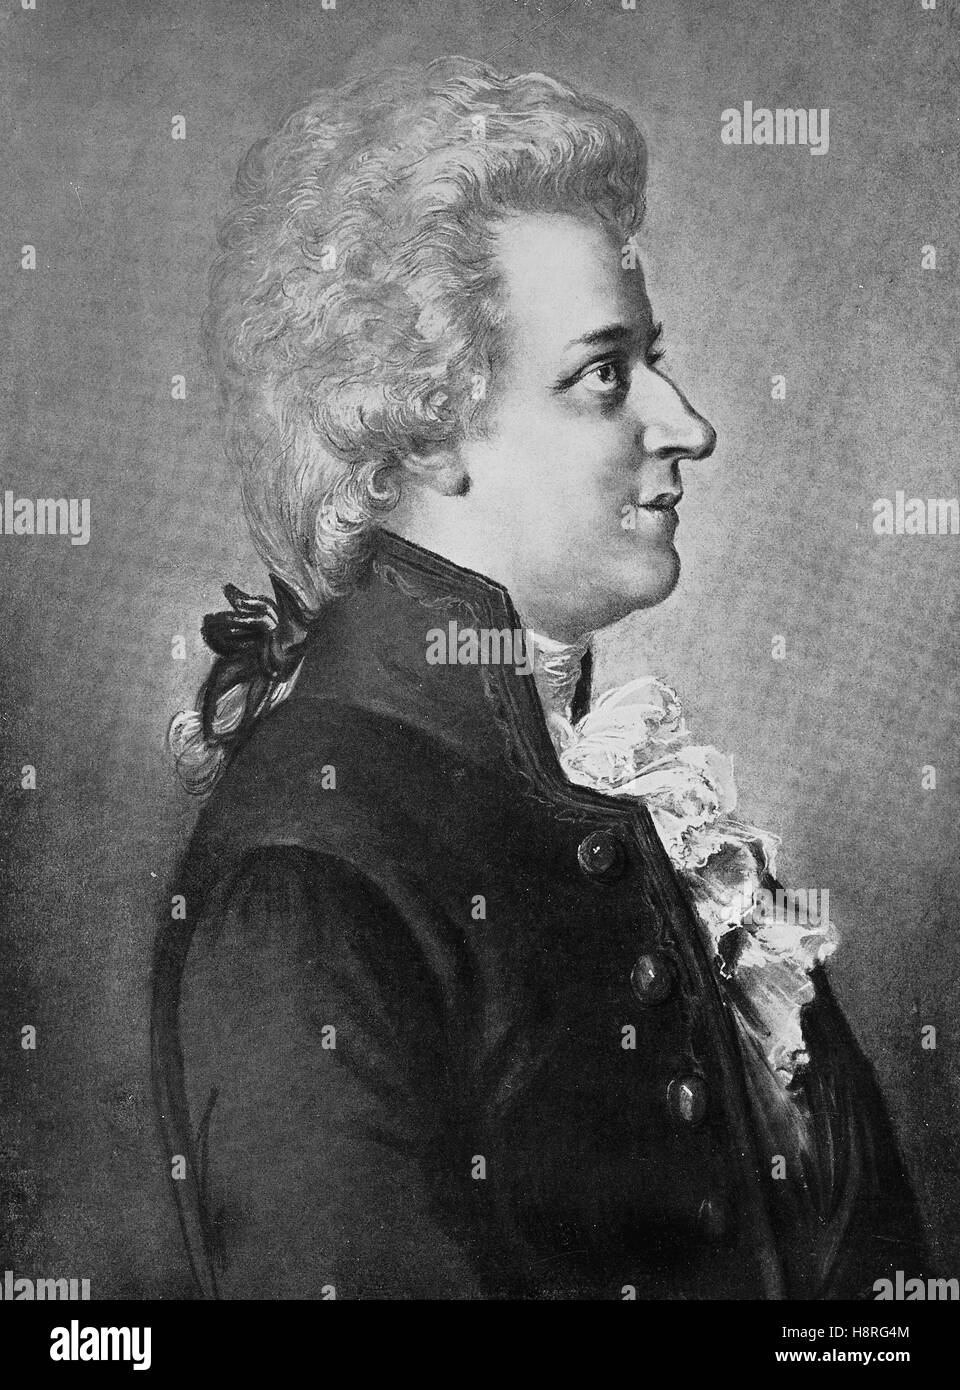 Wolfgang Amadeus Mozart, baptised as Johannes Chrysostomus Wolfgangus Theophilus Mozart, was a prolific and influential - Stock Image